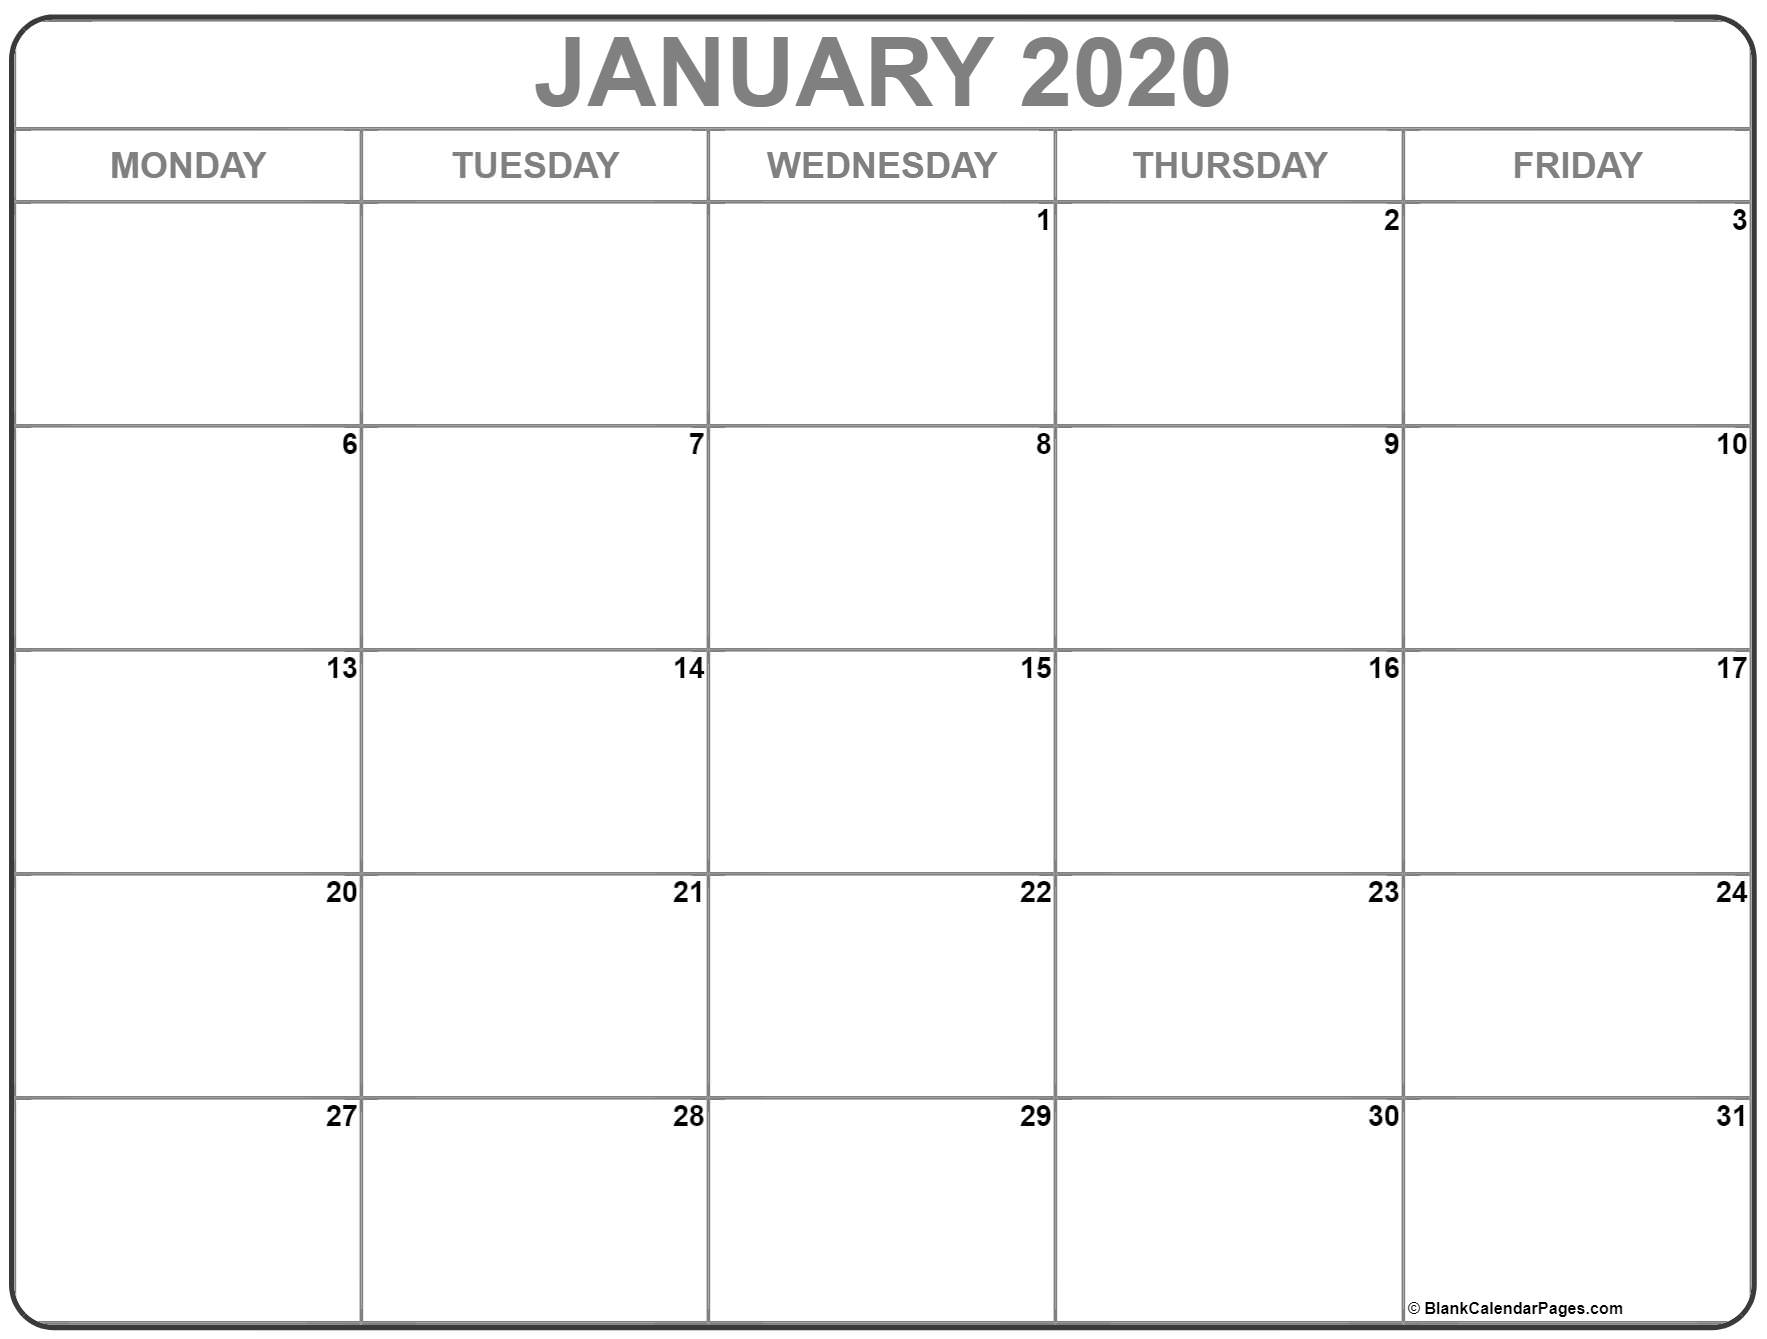 January 2020 Monday Calendar | Monday To Sunday pertaining to Monday Through Friday Blank Calendar